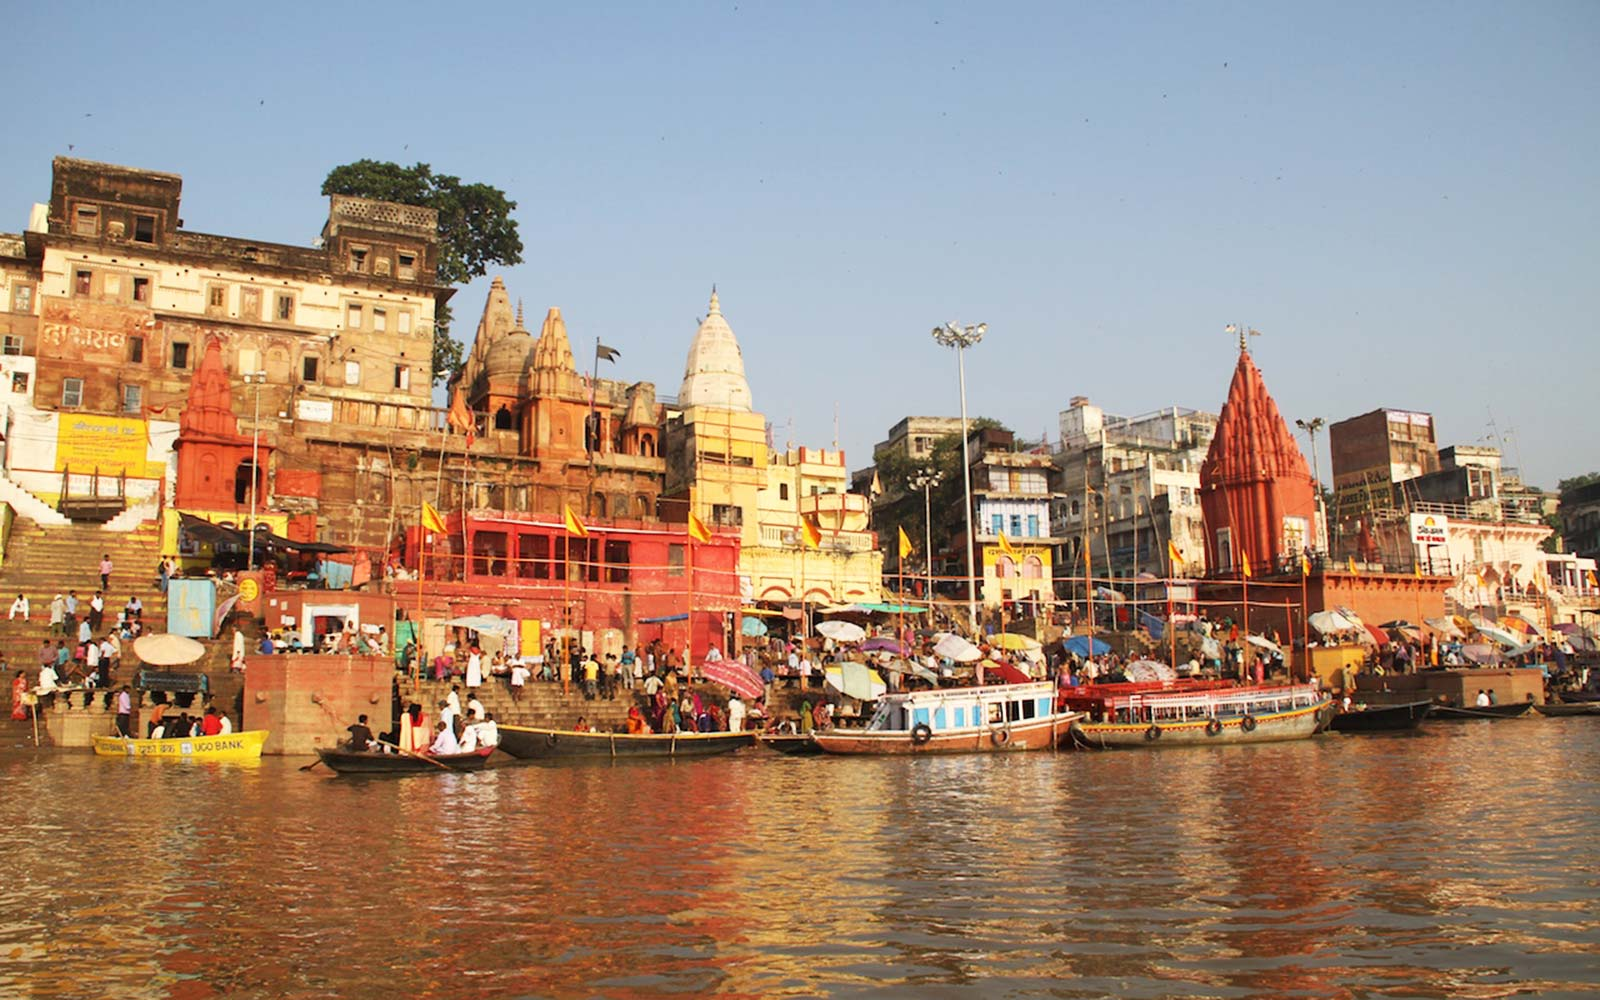 Book an 8-night Tour of Northern India for Only $690 per Person